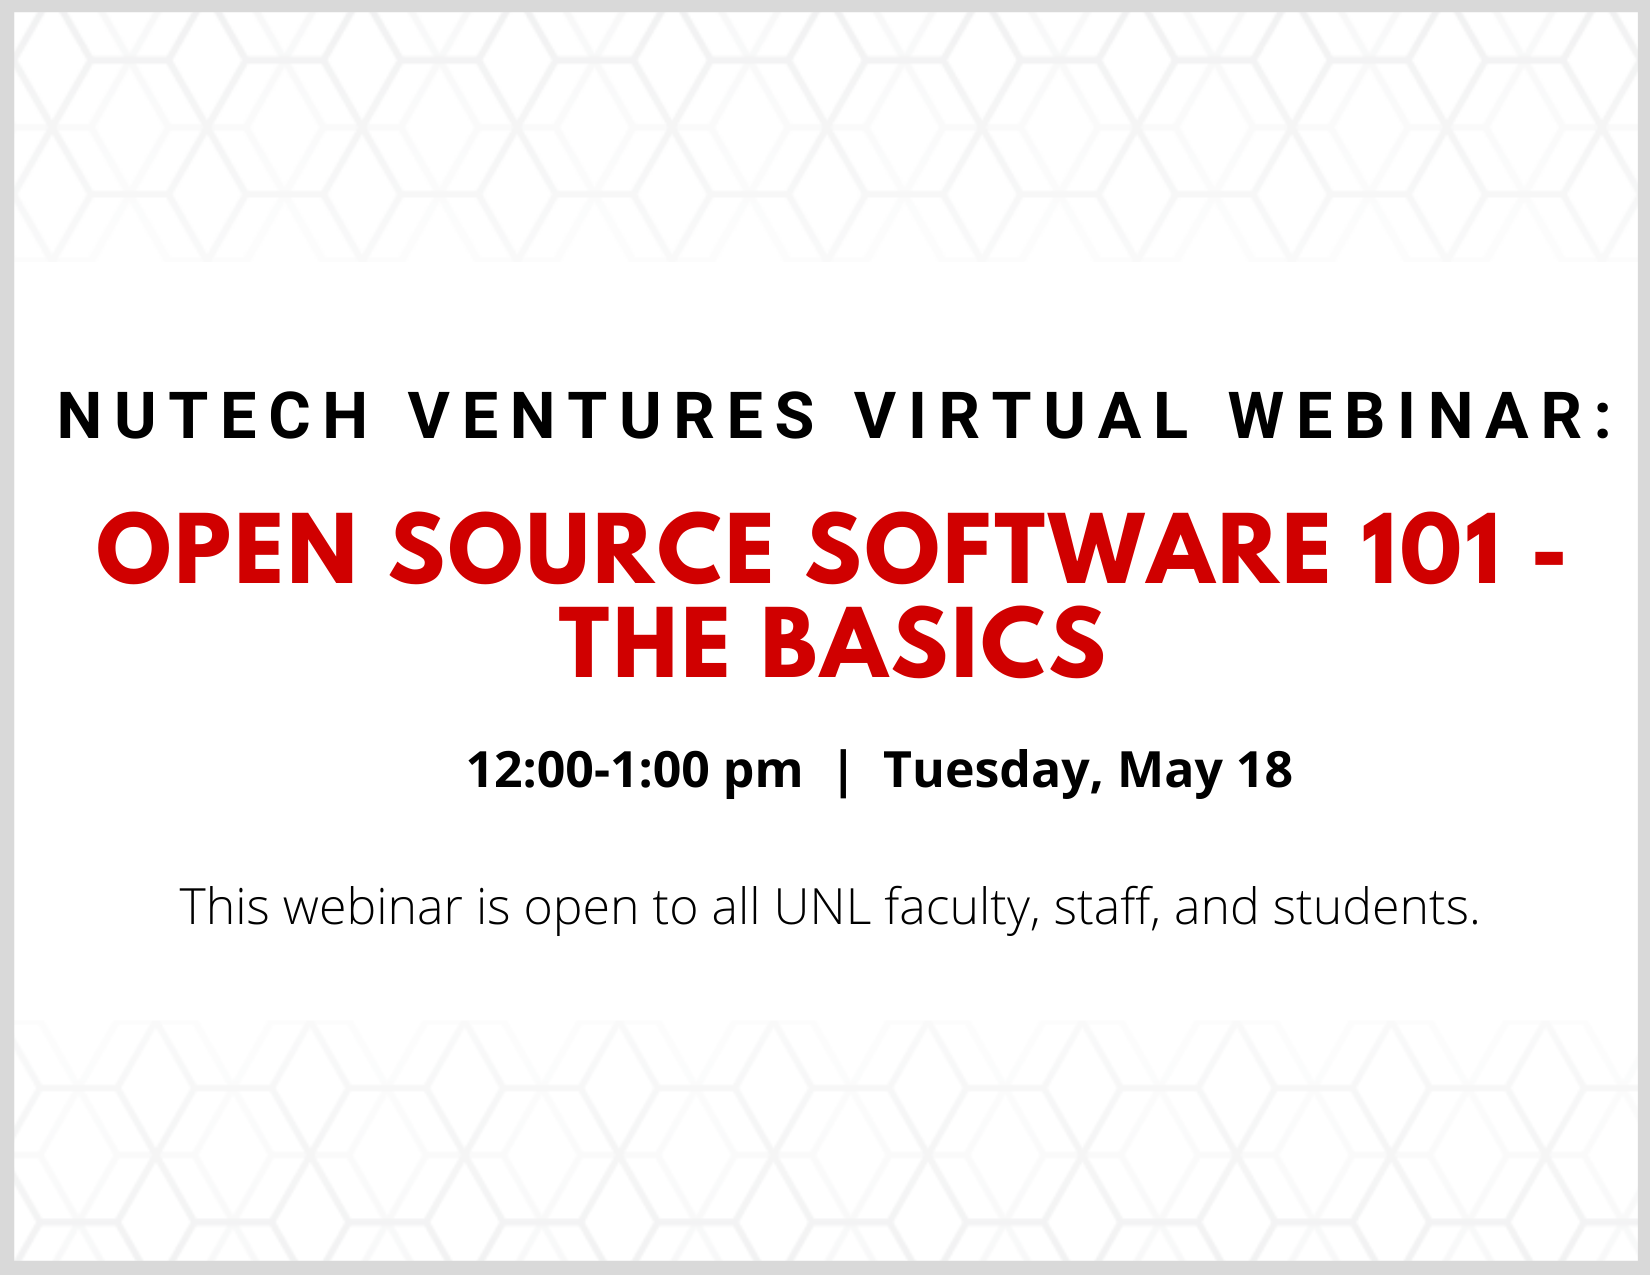 The webinar will be led by attorneys who will discuss the benefits of the open source community, common licenses and the software's effect on university technology commercialization.